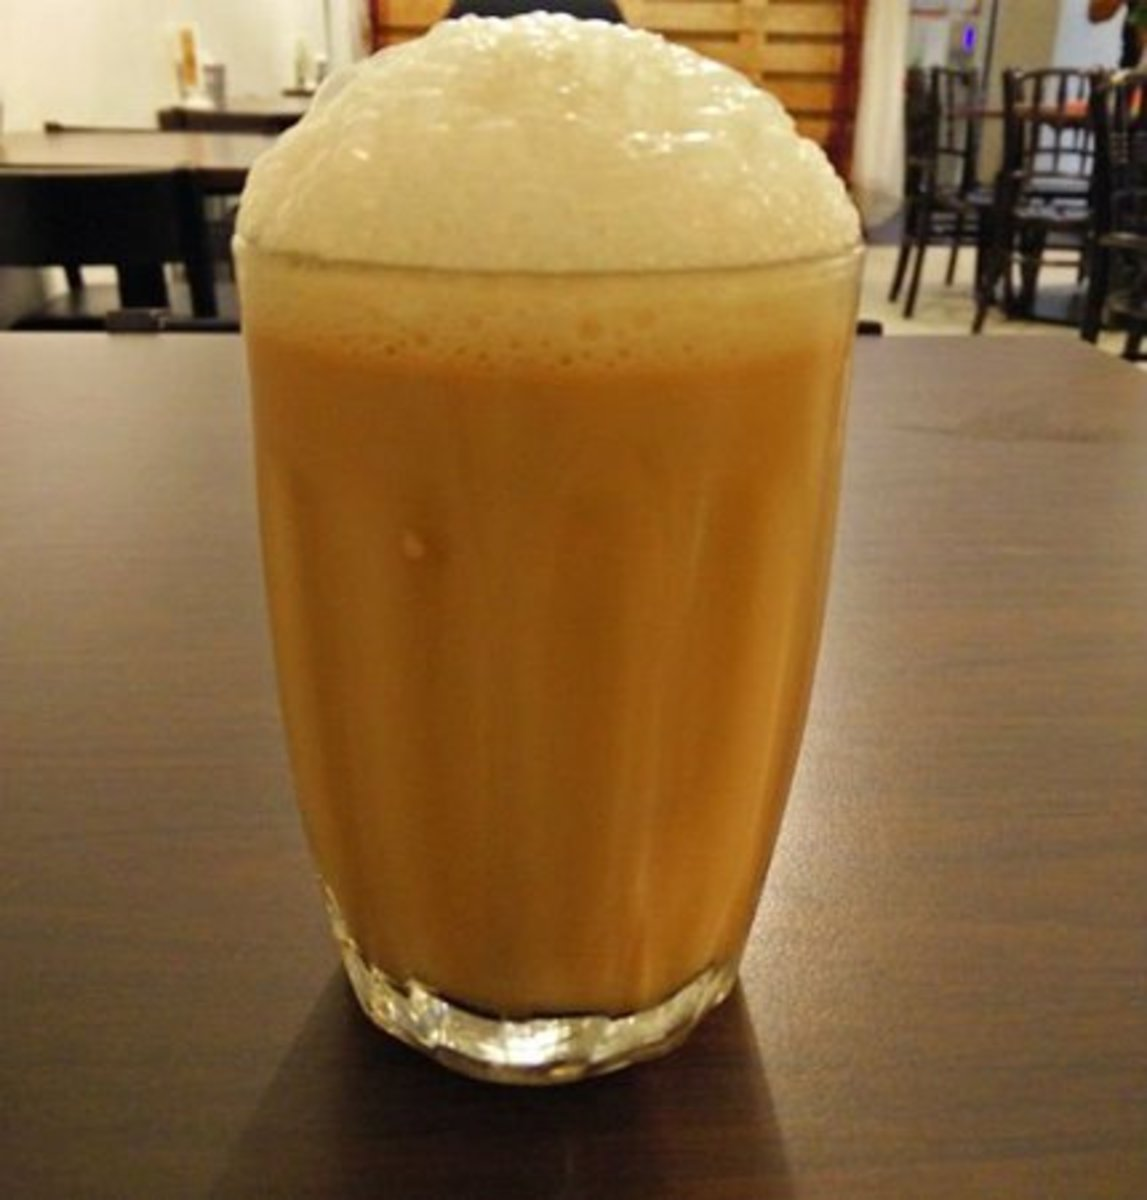 a cup of teh tarik, also known as Malaysia's national drink!